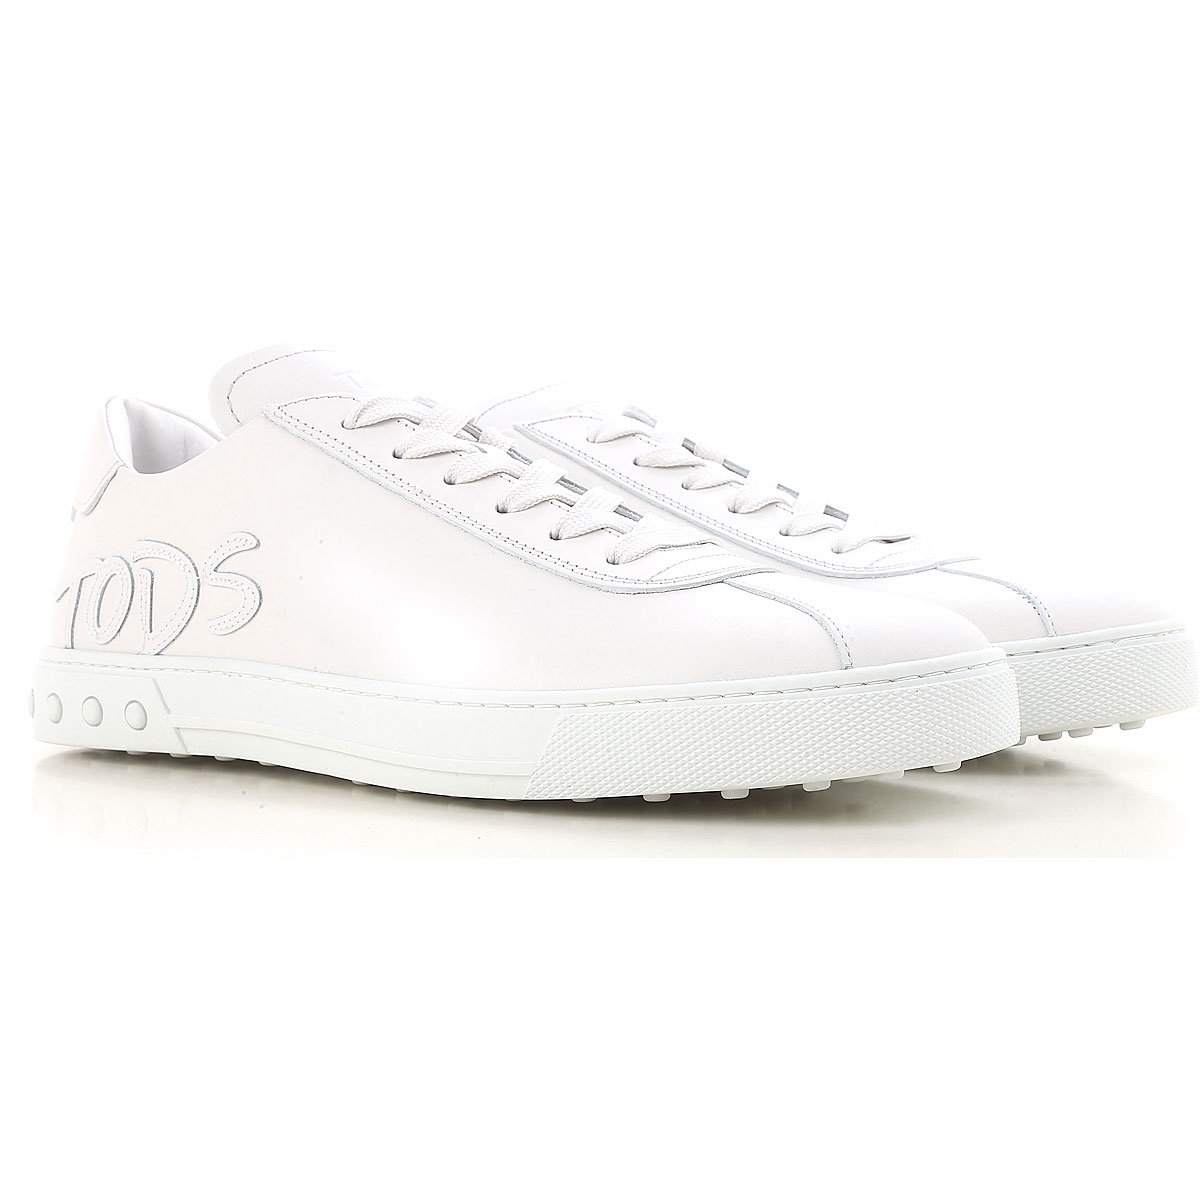 Tods Sneakers for Men On Sale White SE - GOOFASH